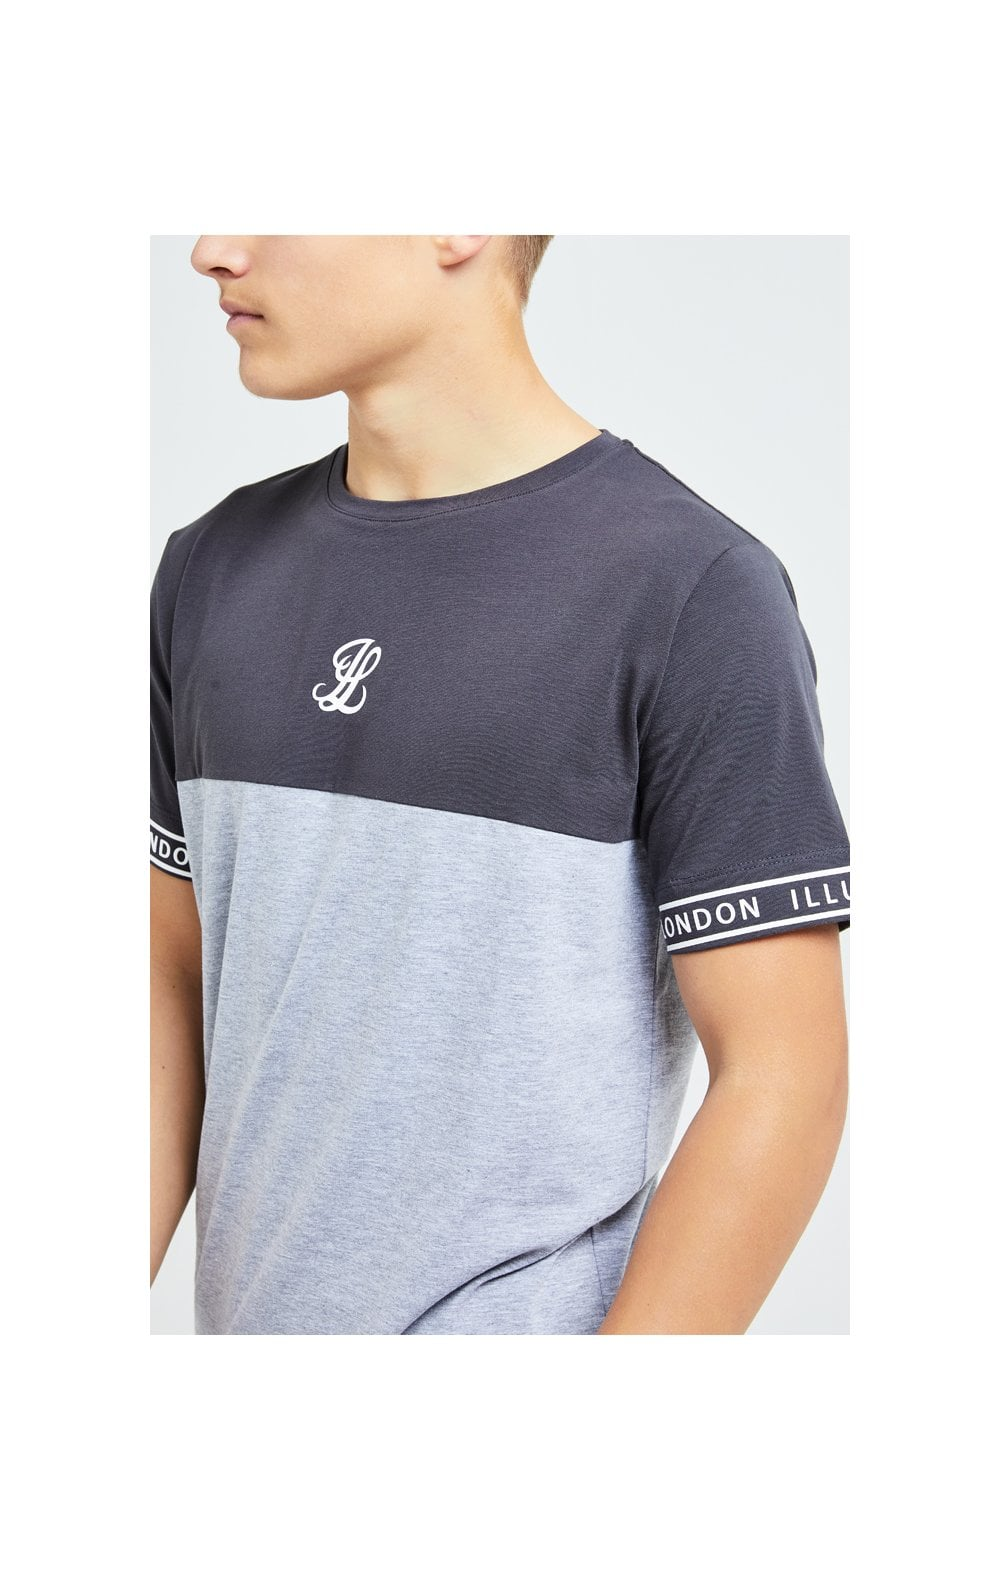 Illusive London Revere Cut And Sew Tee - Dark Grey & Light Grey Marl